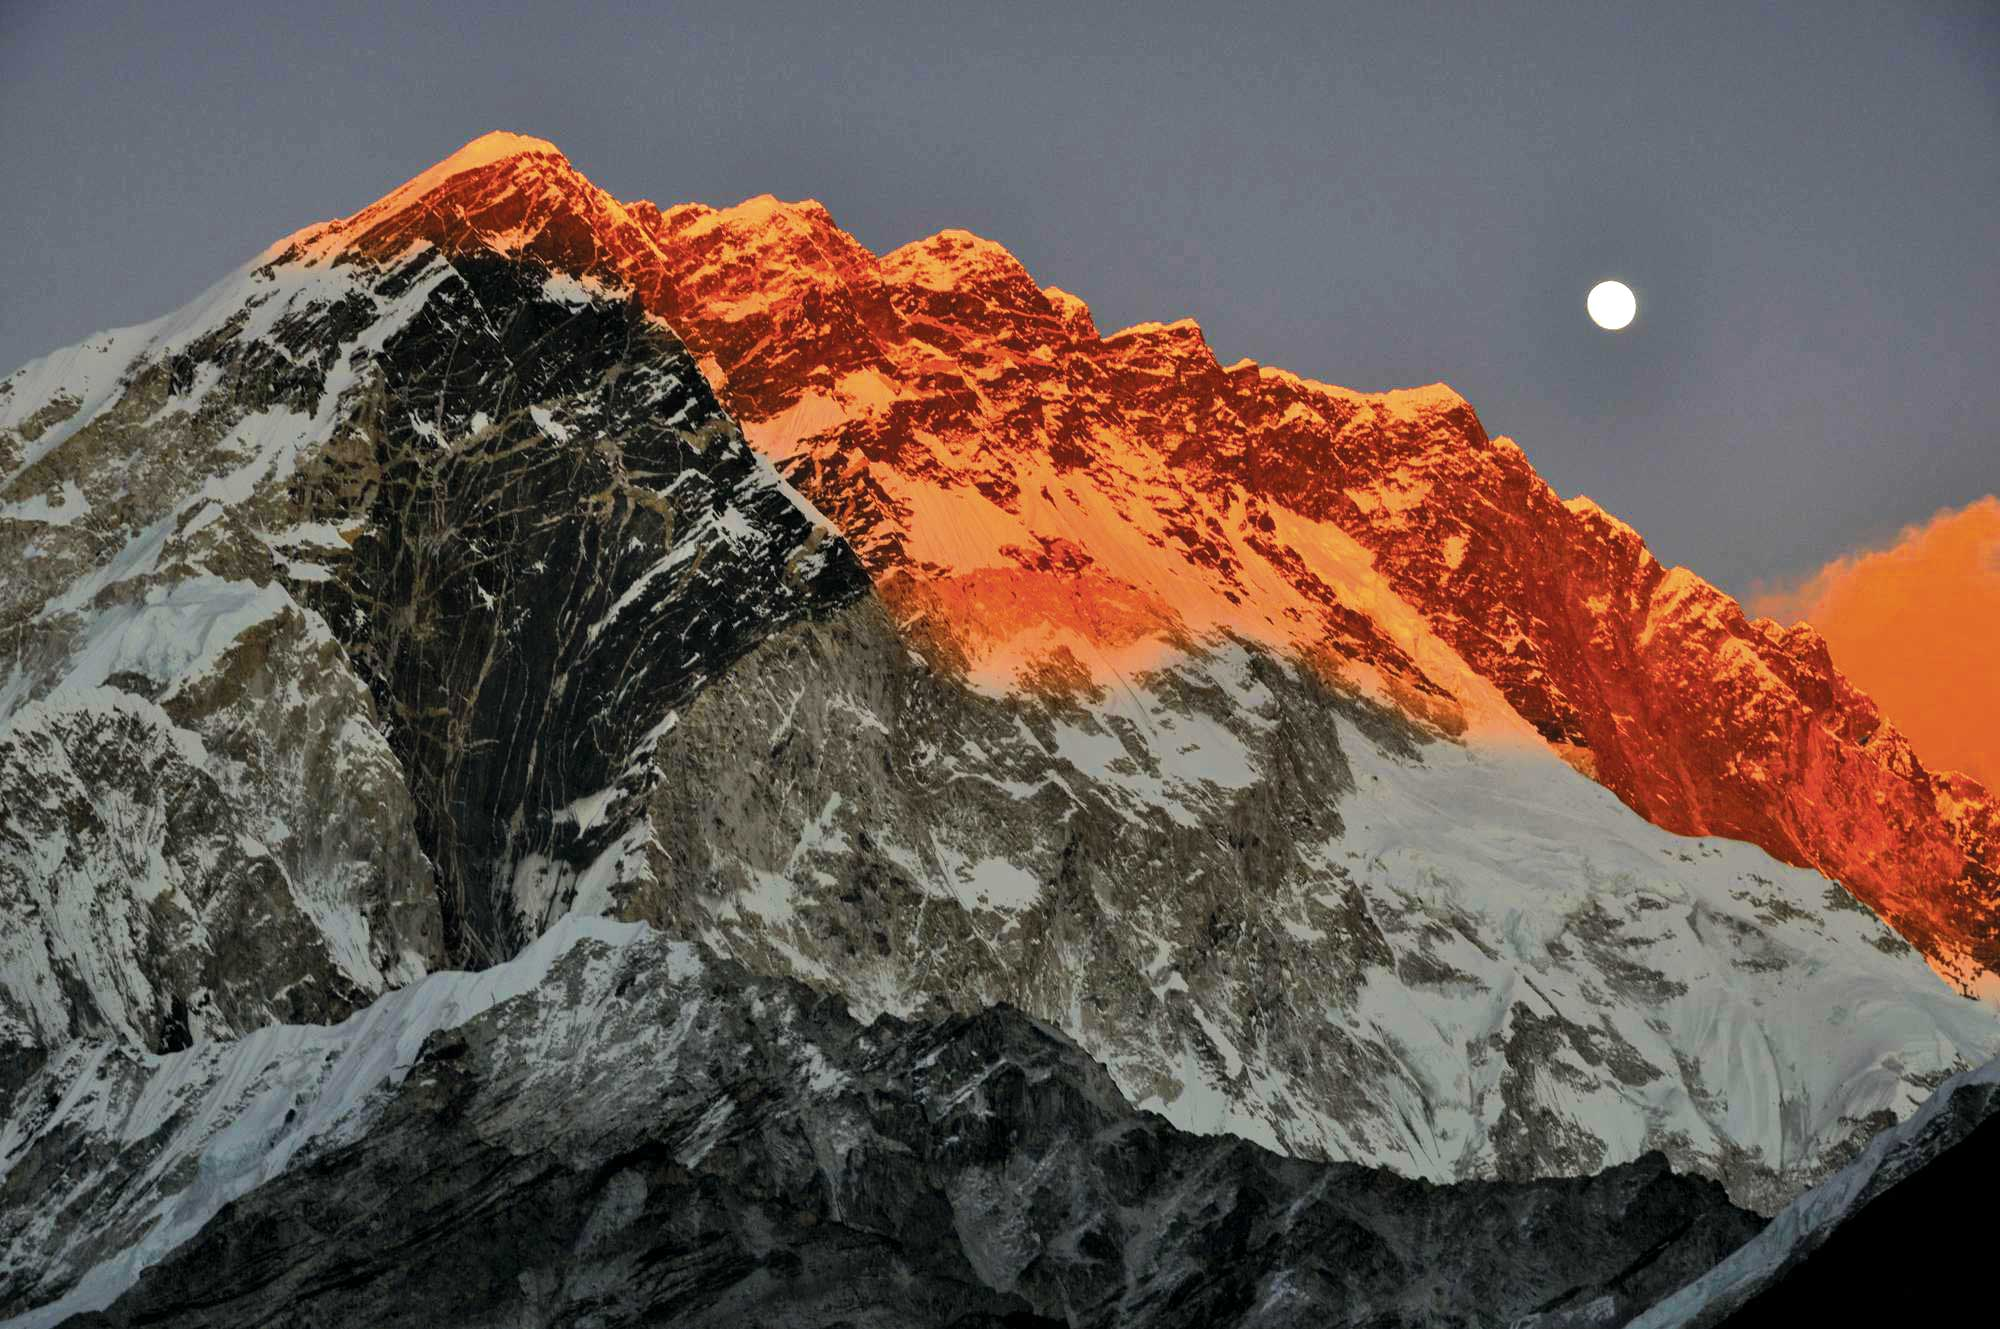 Everest: Reflections on the Solukhumbu by Sujoy Das and Lisa Choegyal